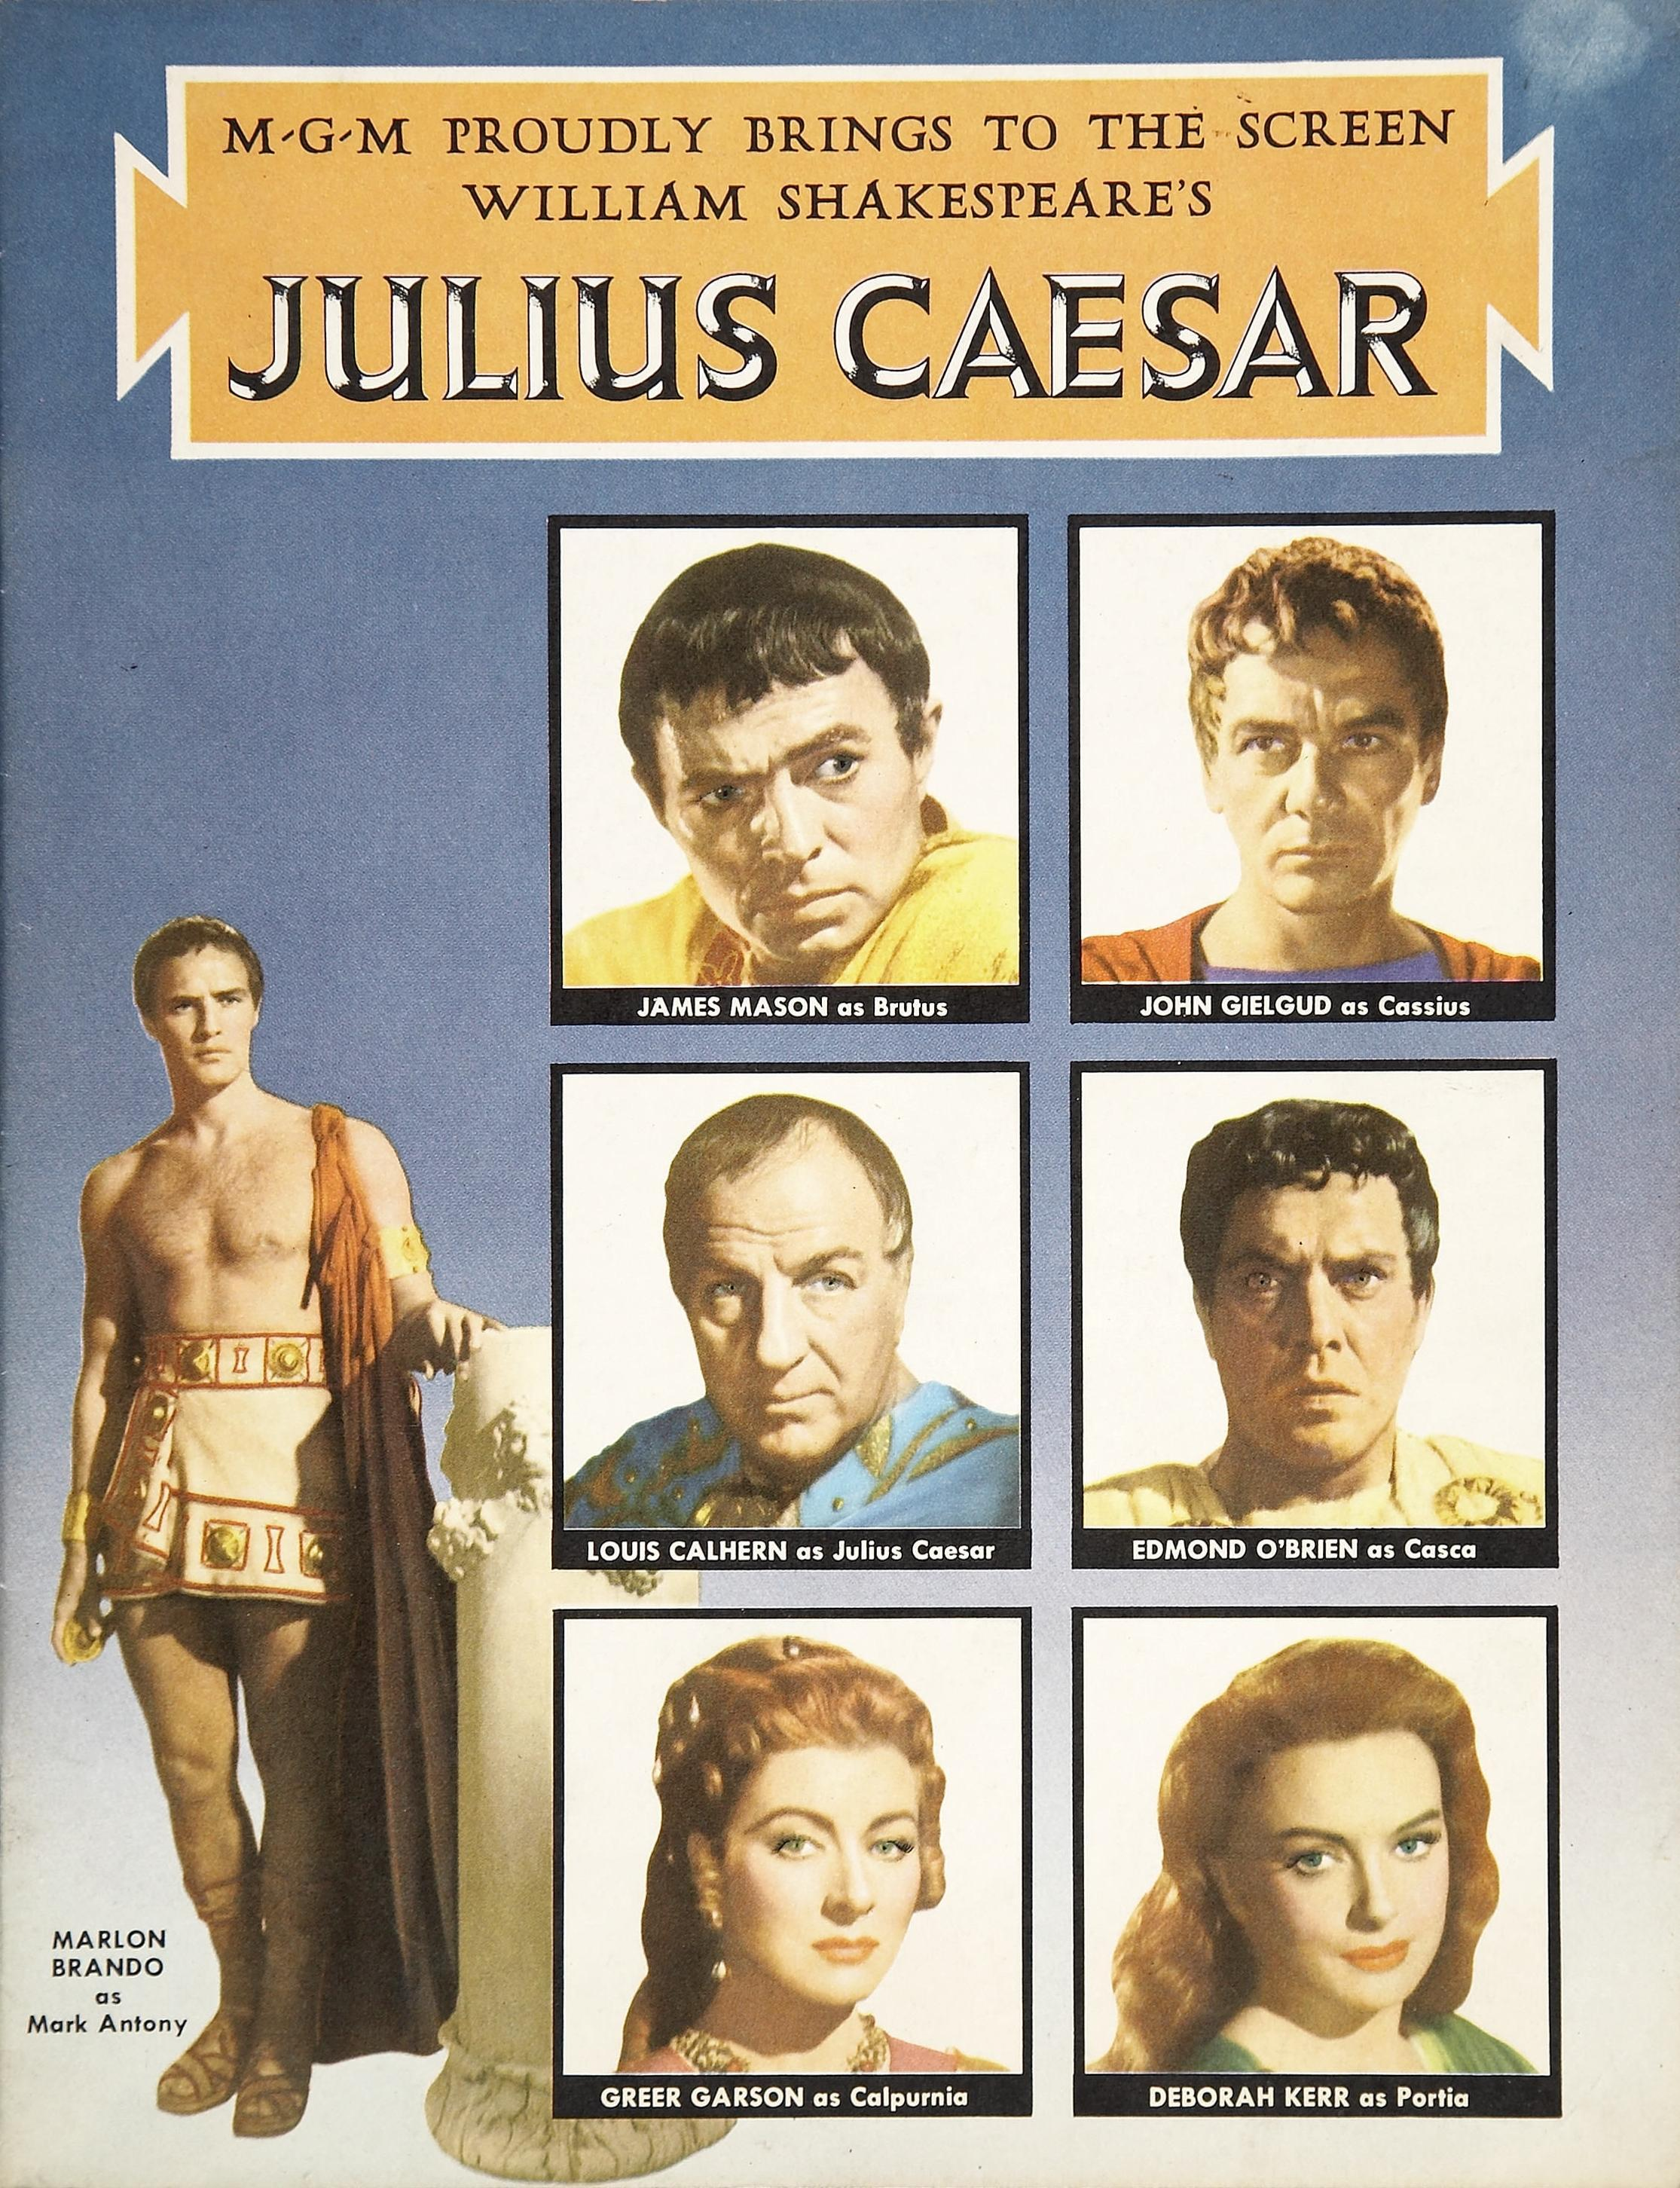 a report on the four conspirators in william shakespeares play julius caesar cassius casca cinna and